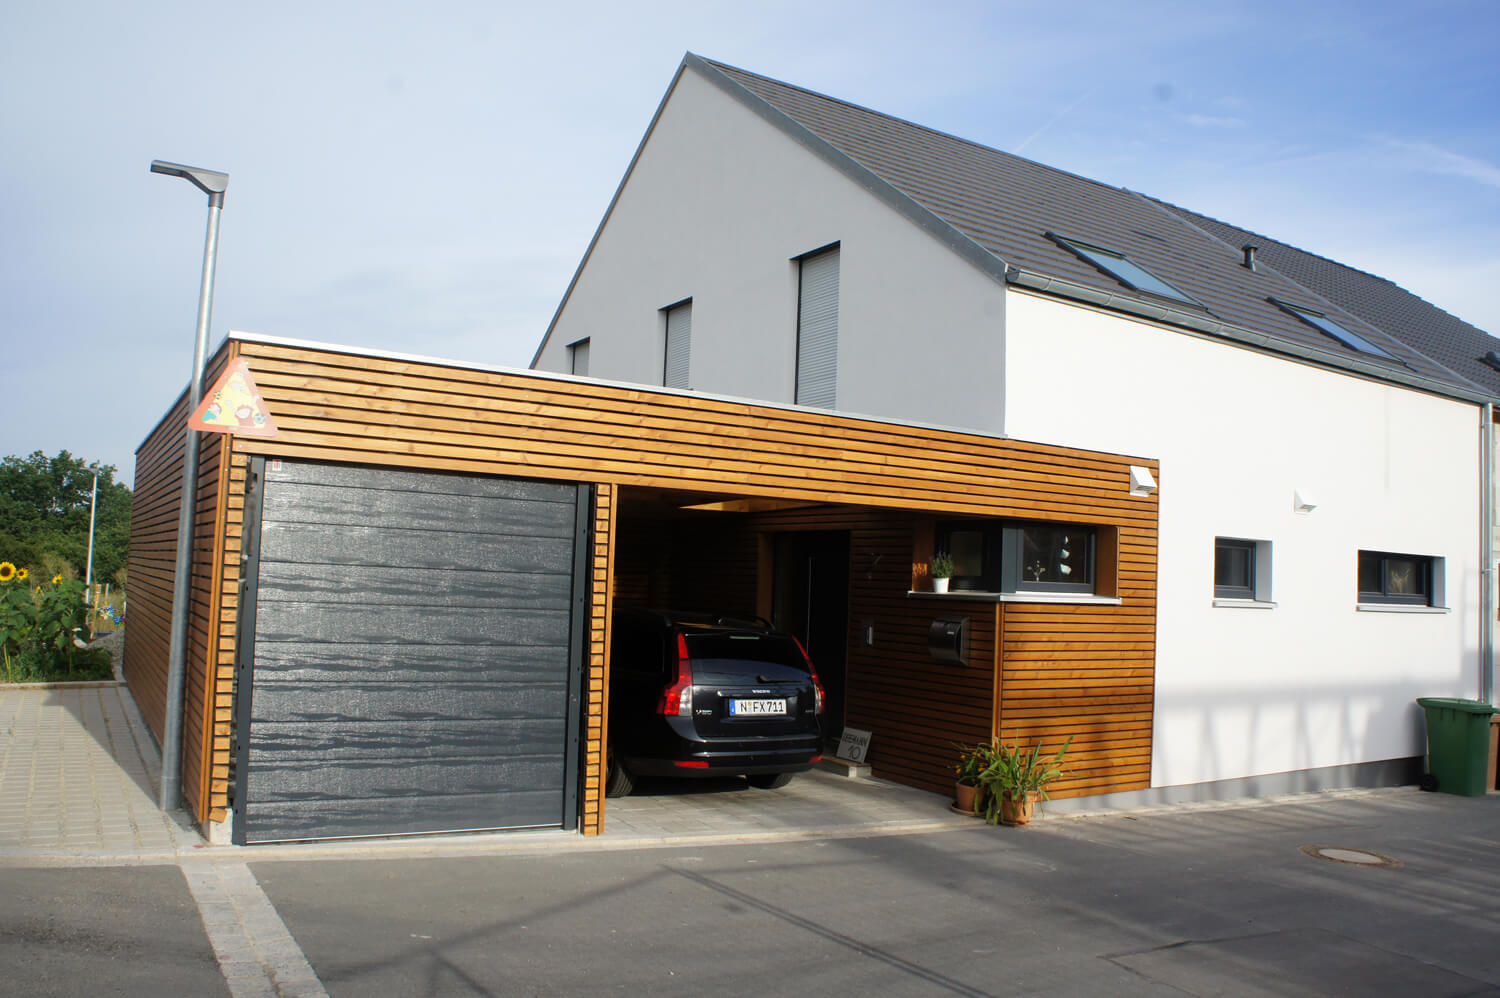 einfamilienhaus als doppelhaush lfte mit garage und carport in ro tal eg. Black Bedroom Furniture Sets. Home Design Ideas